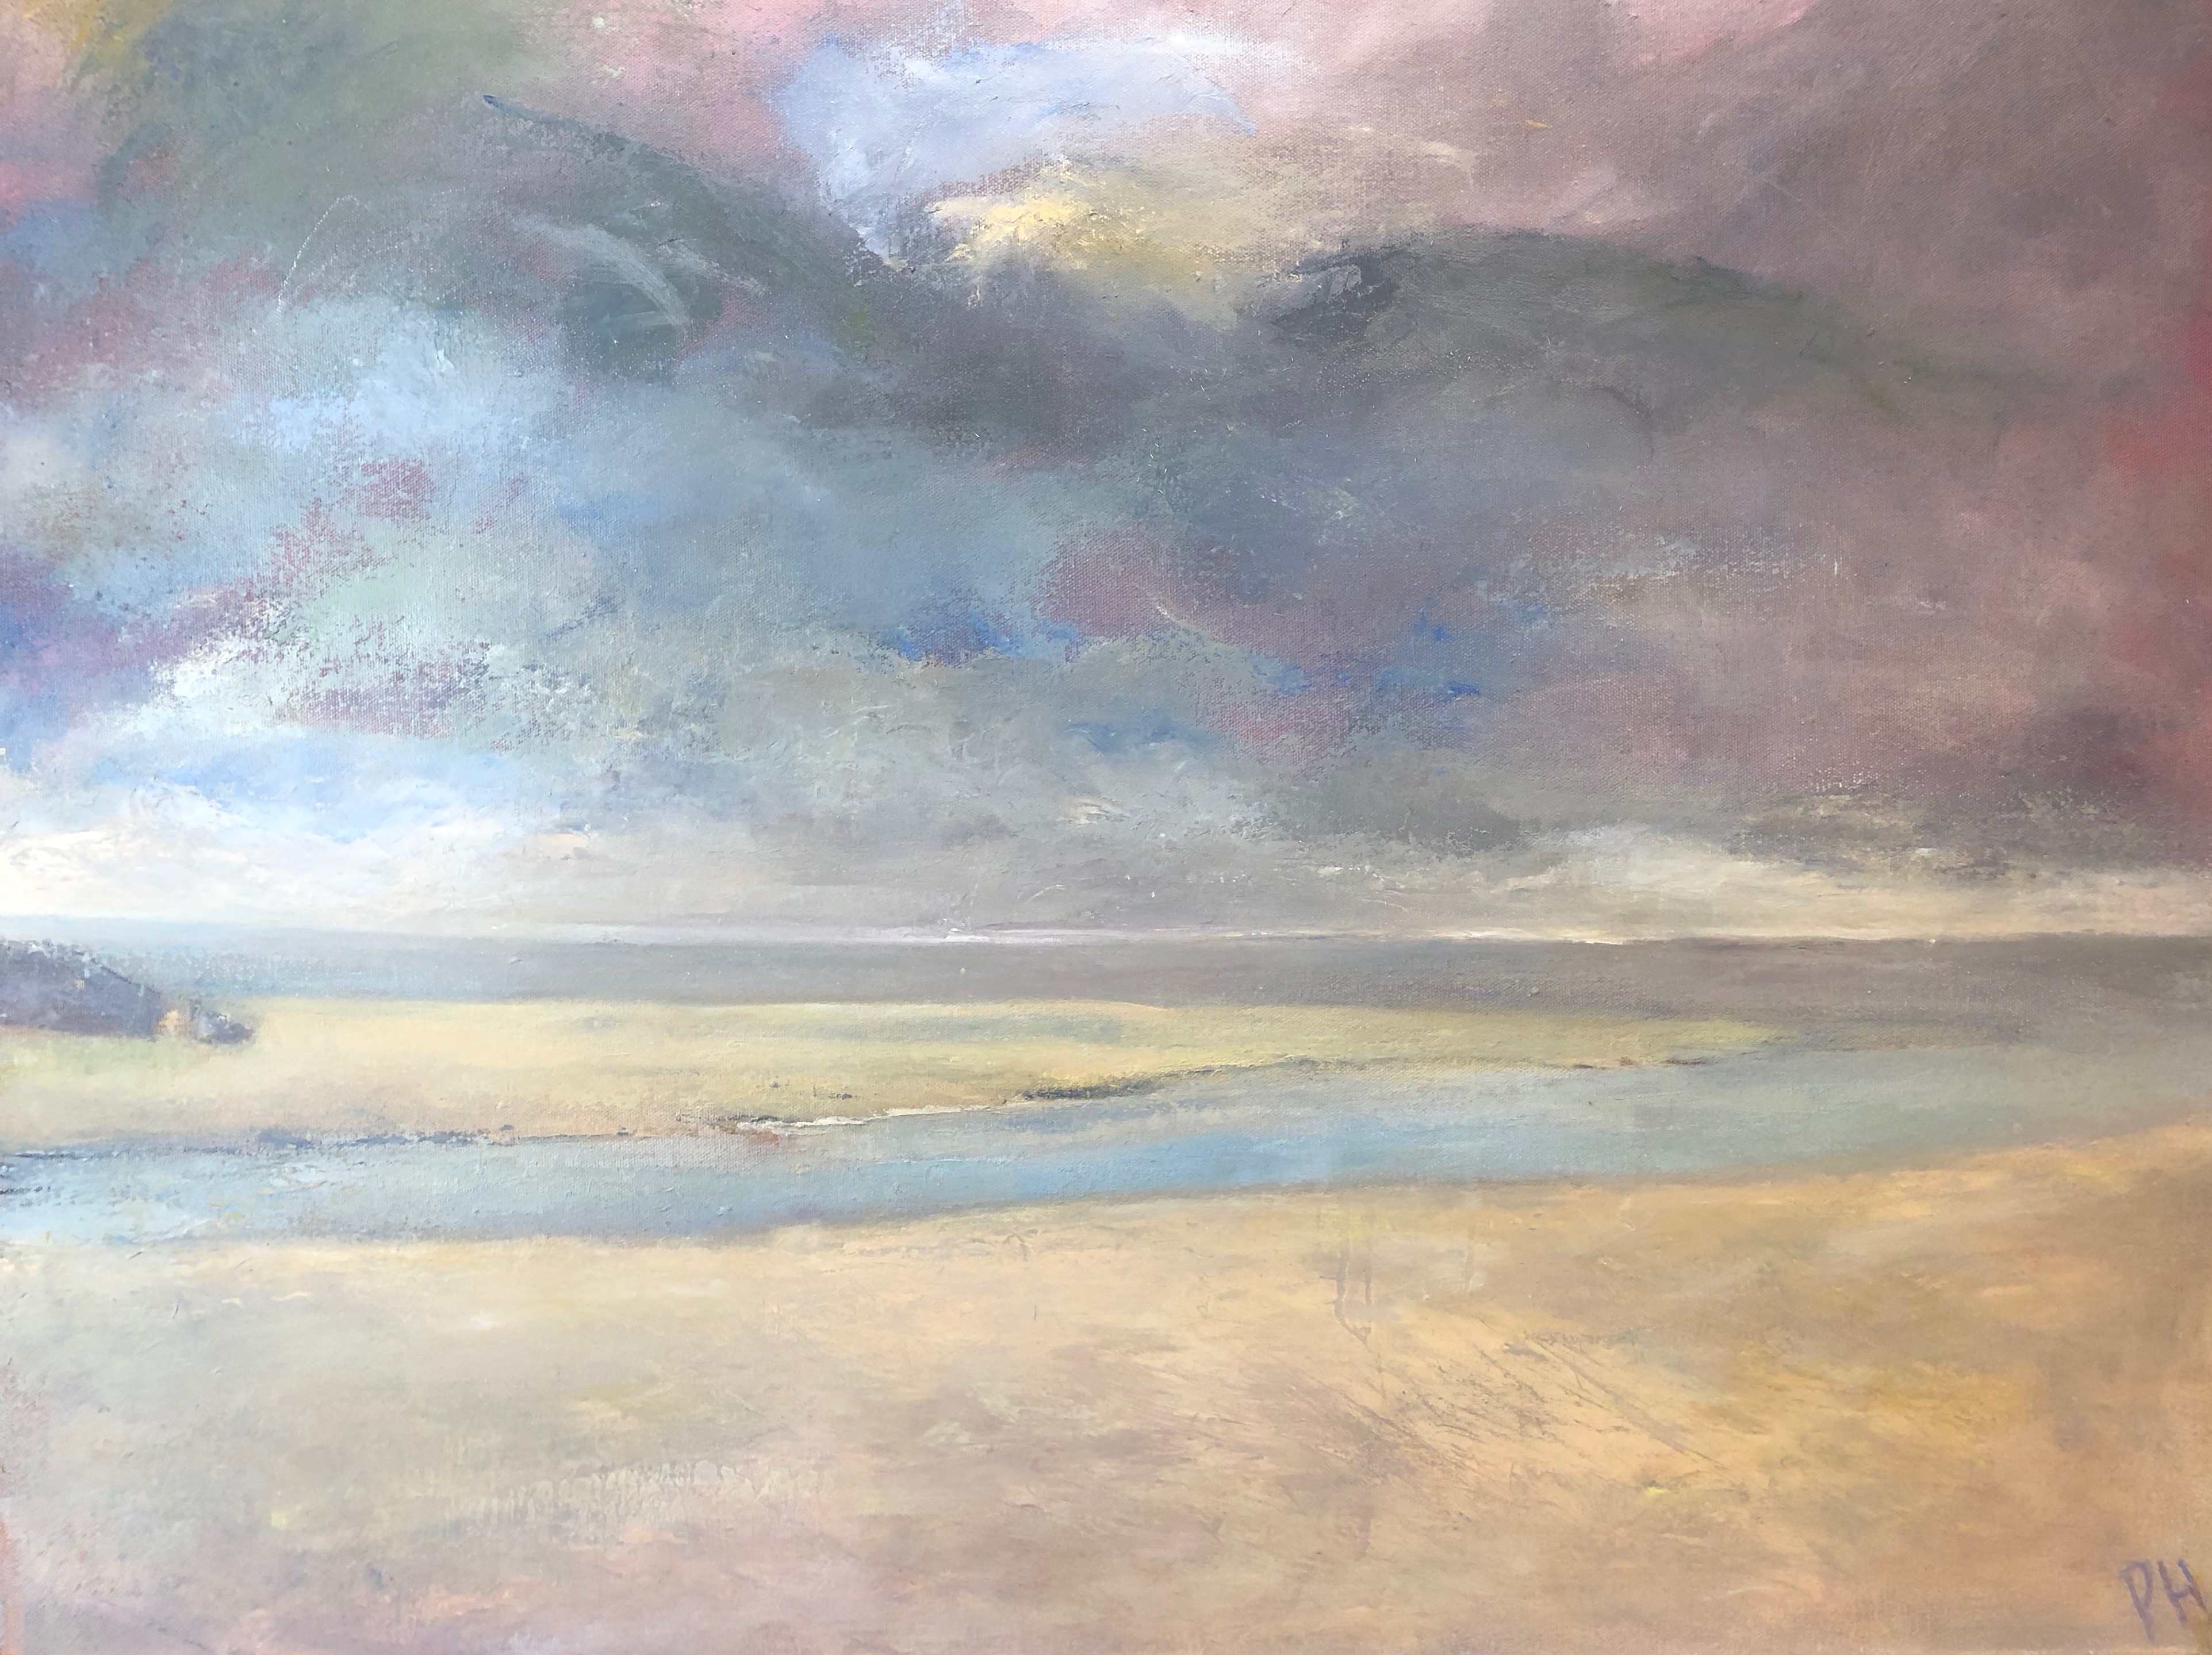 Peter Herbert . Sky and Sea No.1 . 2017 Oil on canvas . 24x30 inches